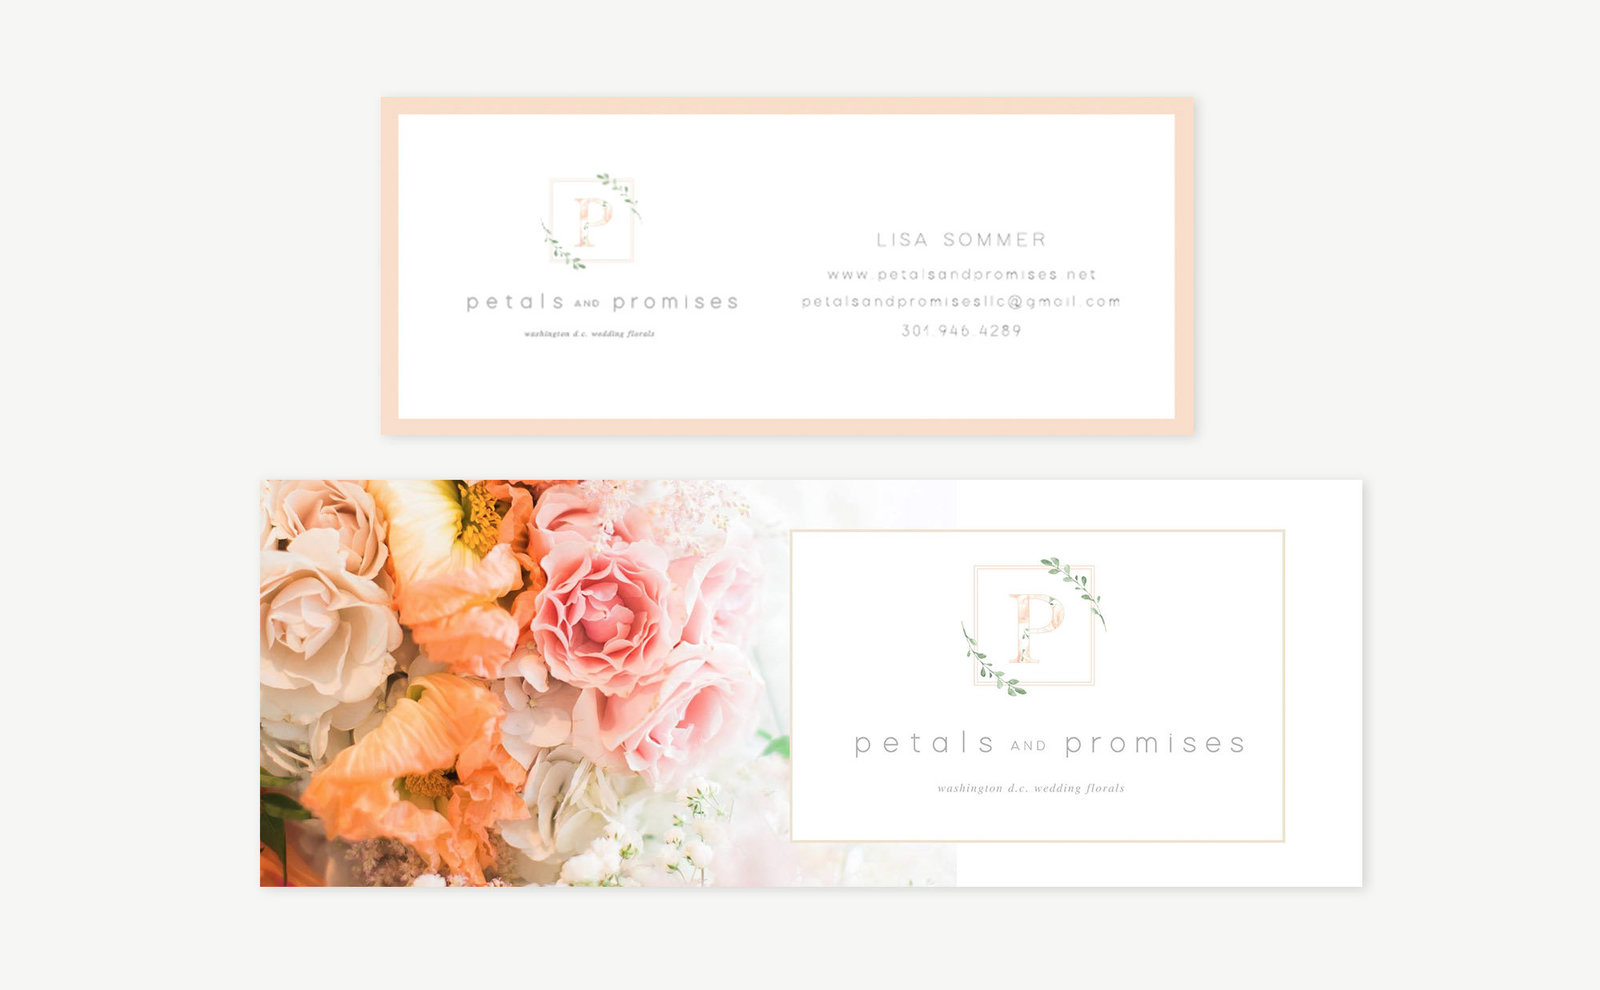 branding-for-creatives-facebook-petals-promises